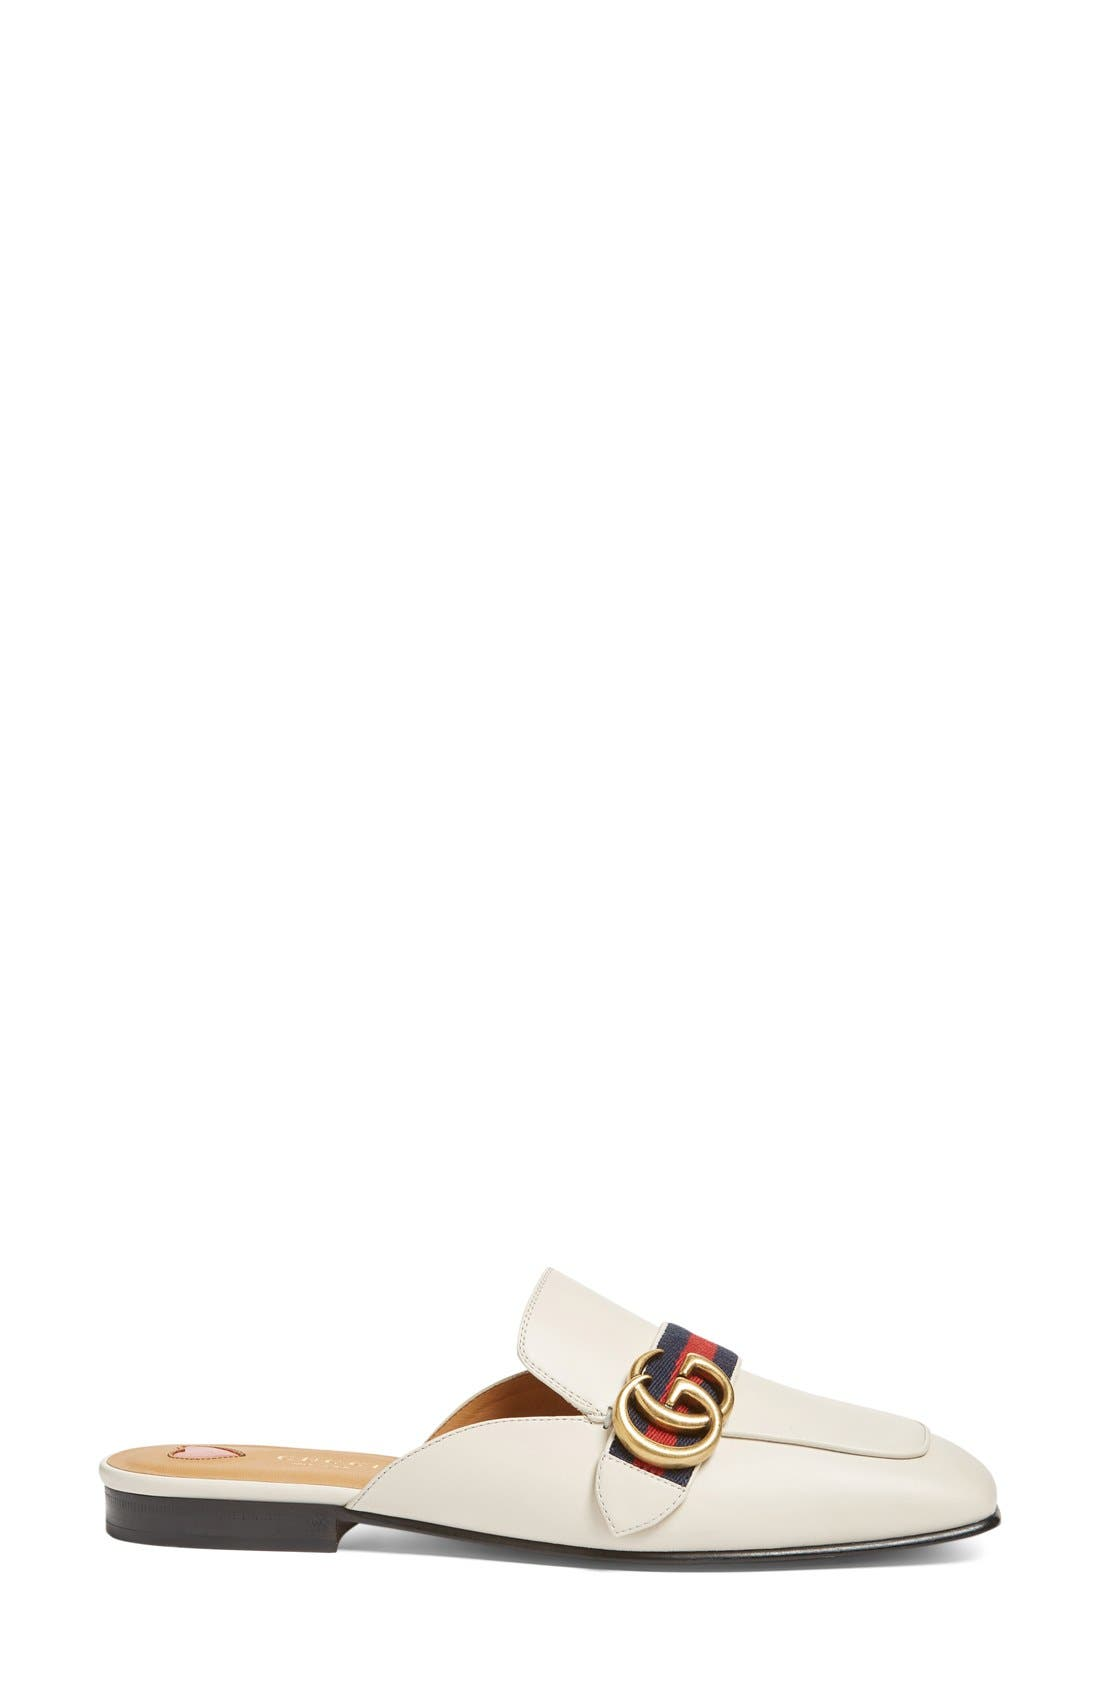 Loafer Mule,                             Alternate thumbnail 4, color,                             White Leather